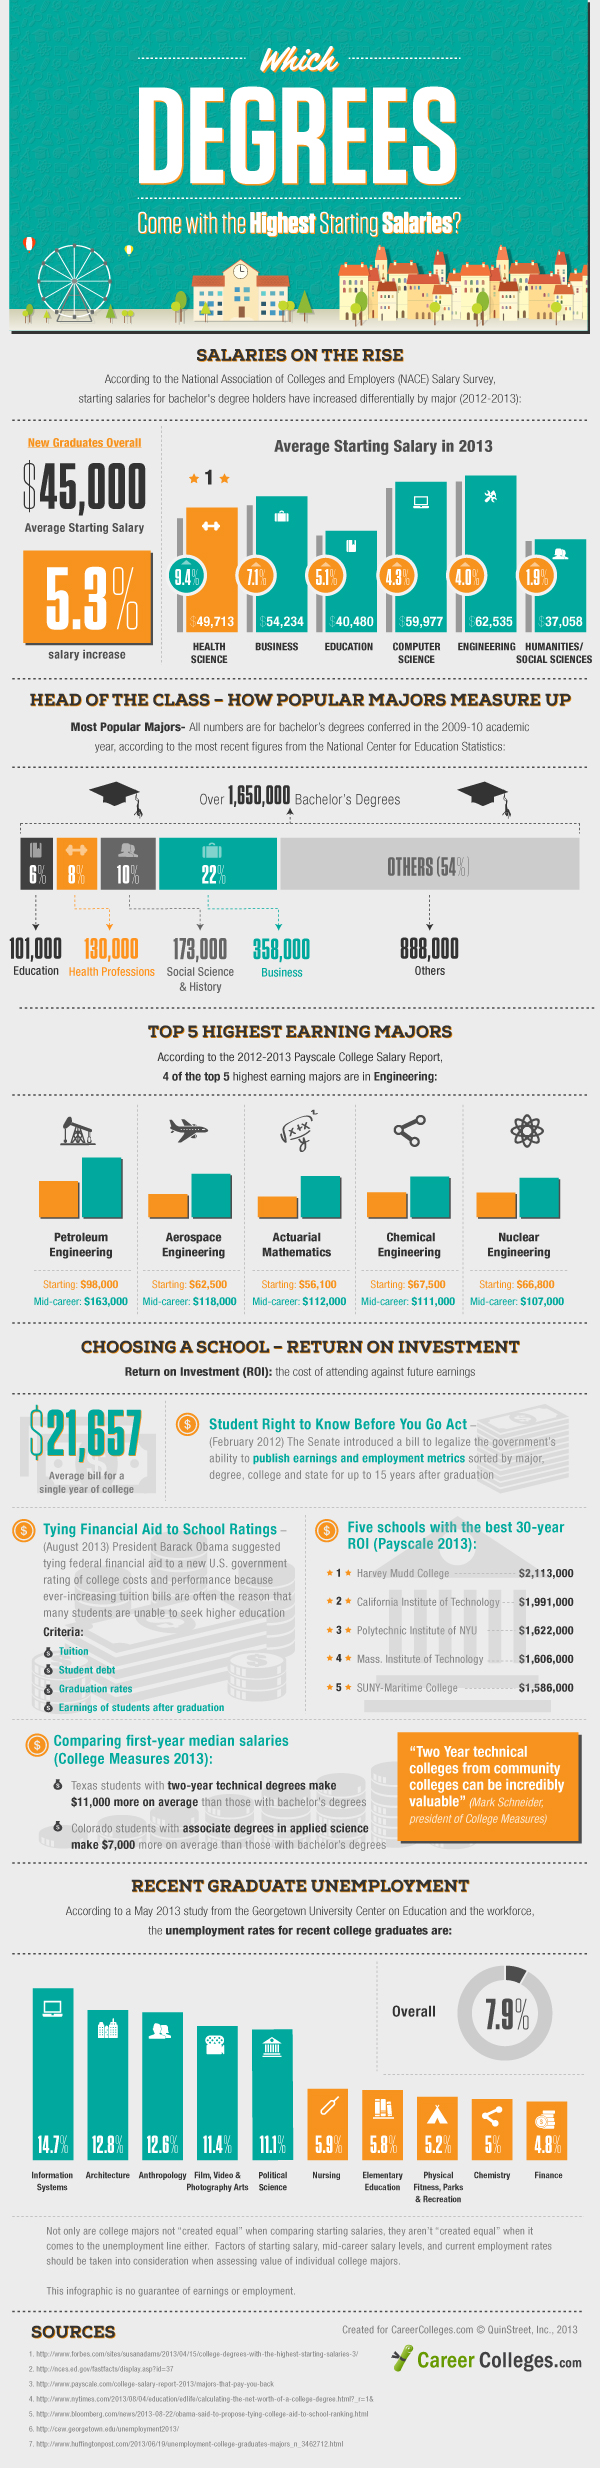 Which degrees come with the highest starting salaries? [infographic]